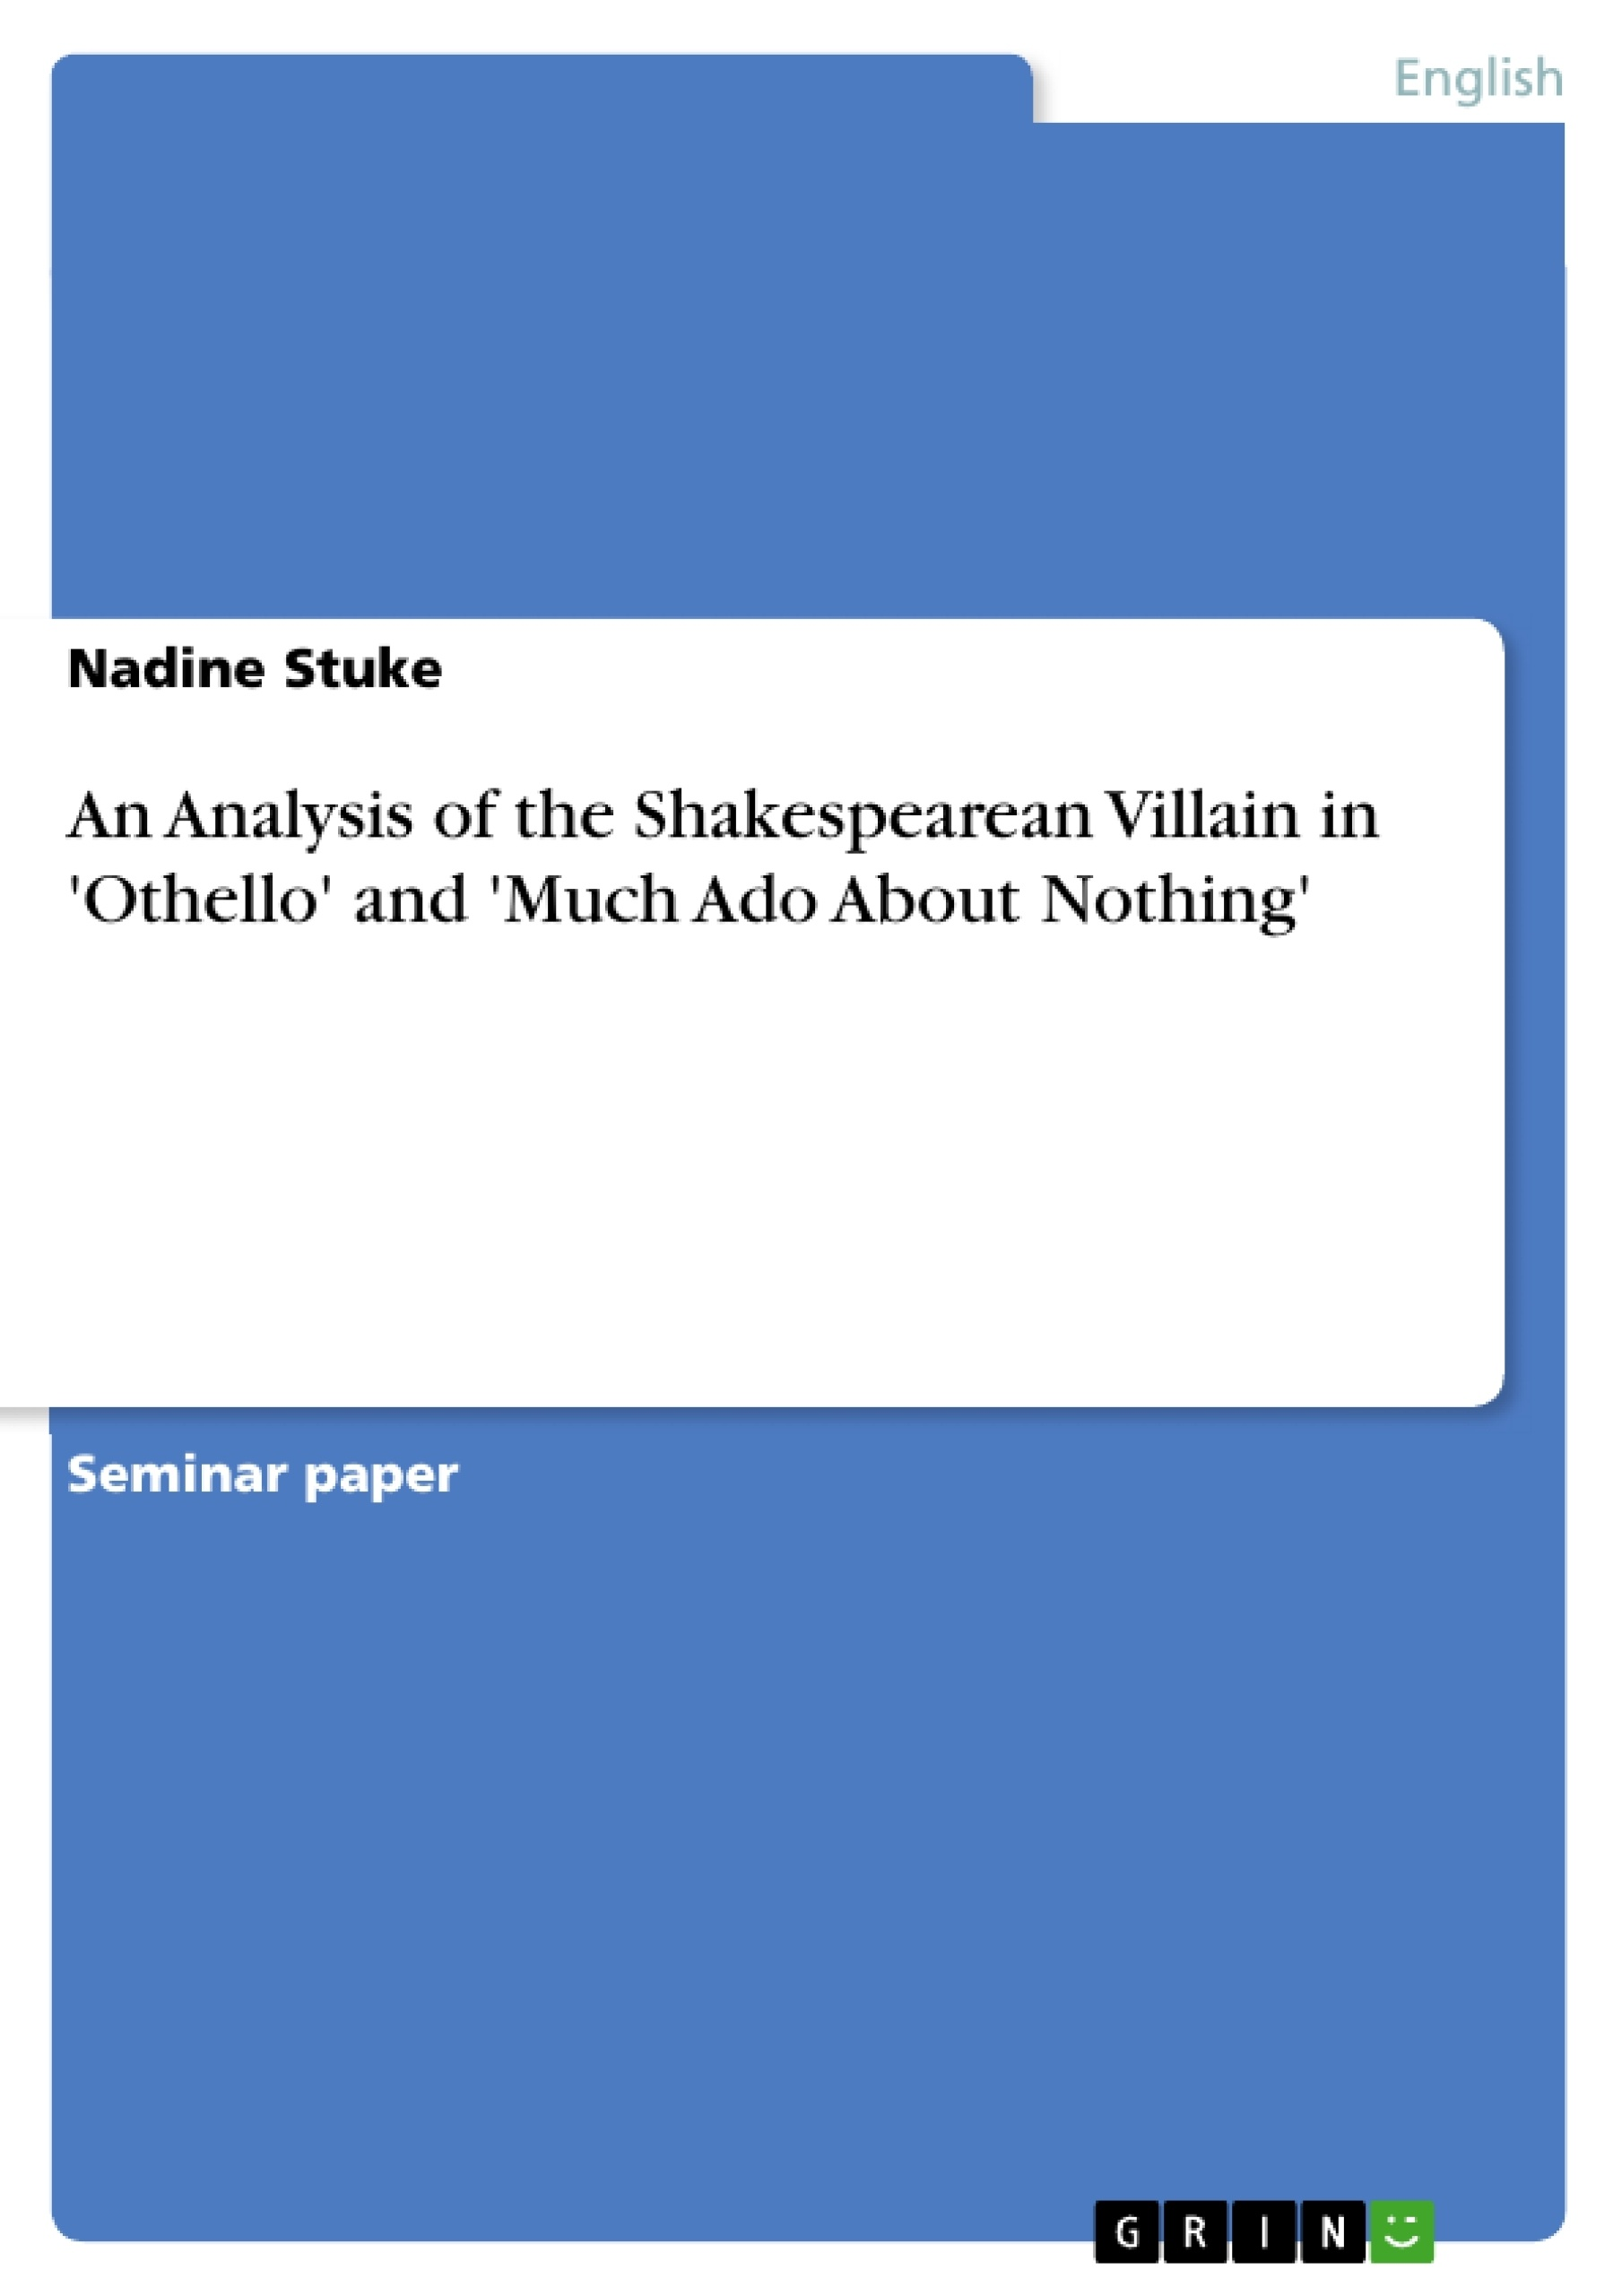 Title: An Analysis of the Shakespearean Villain in 'Othello' and 'Much Ado About Nothing'